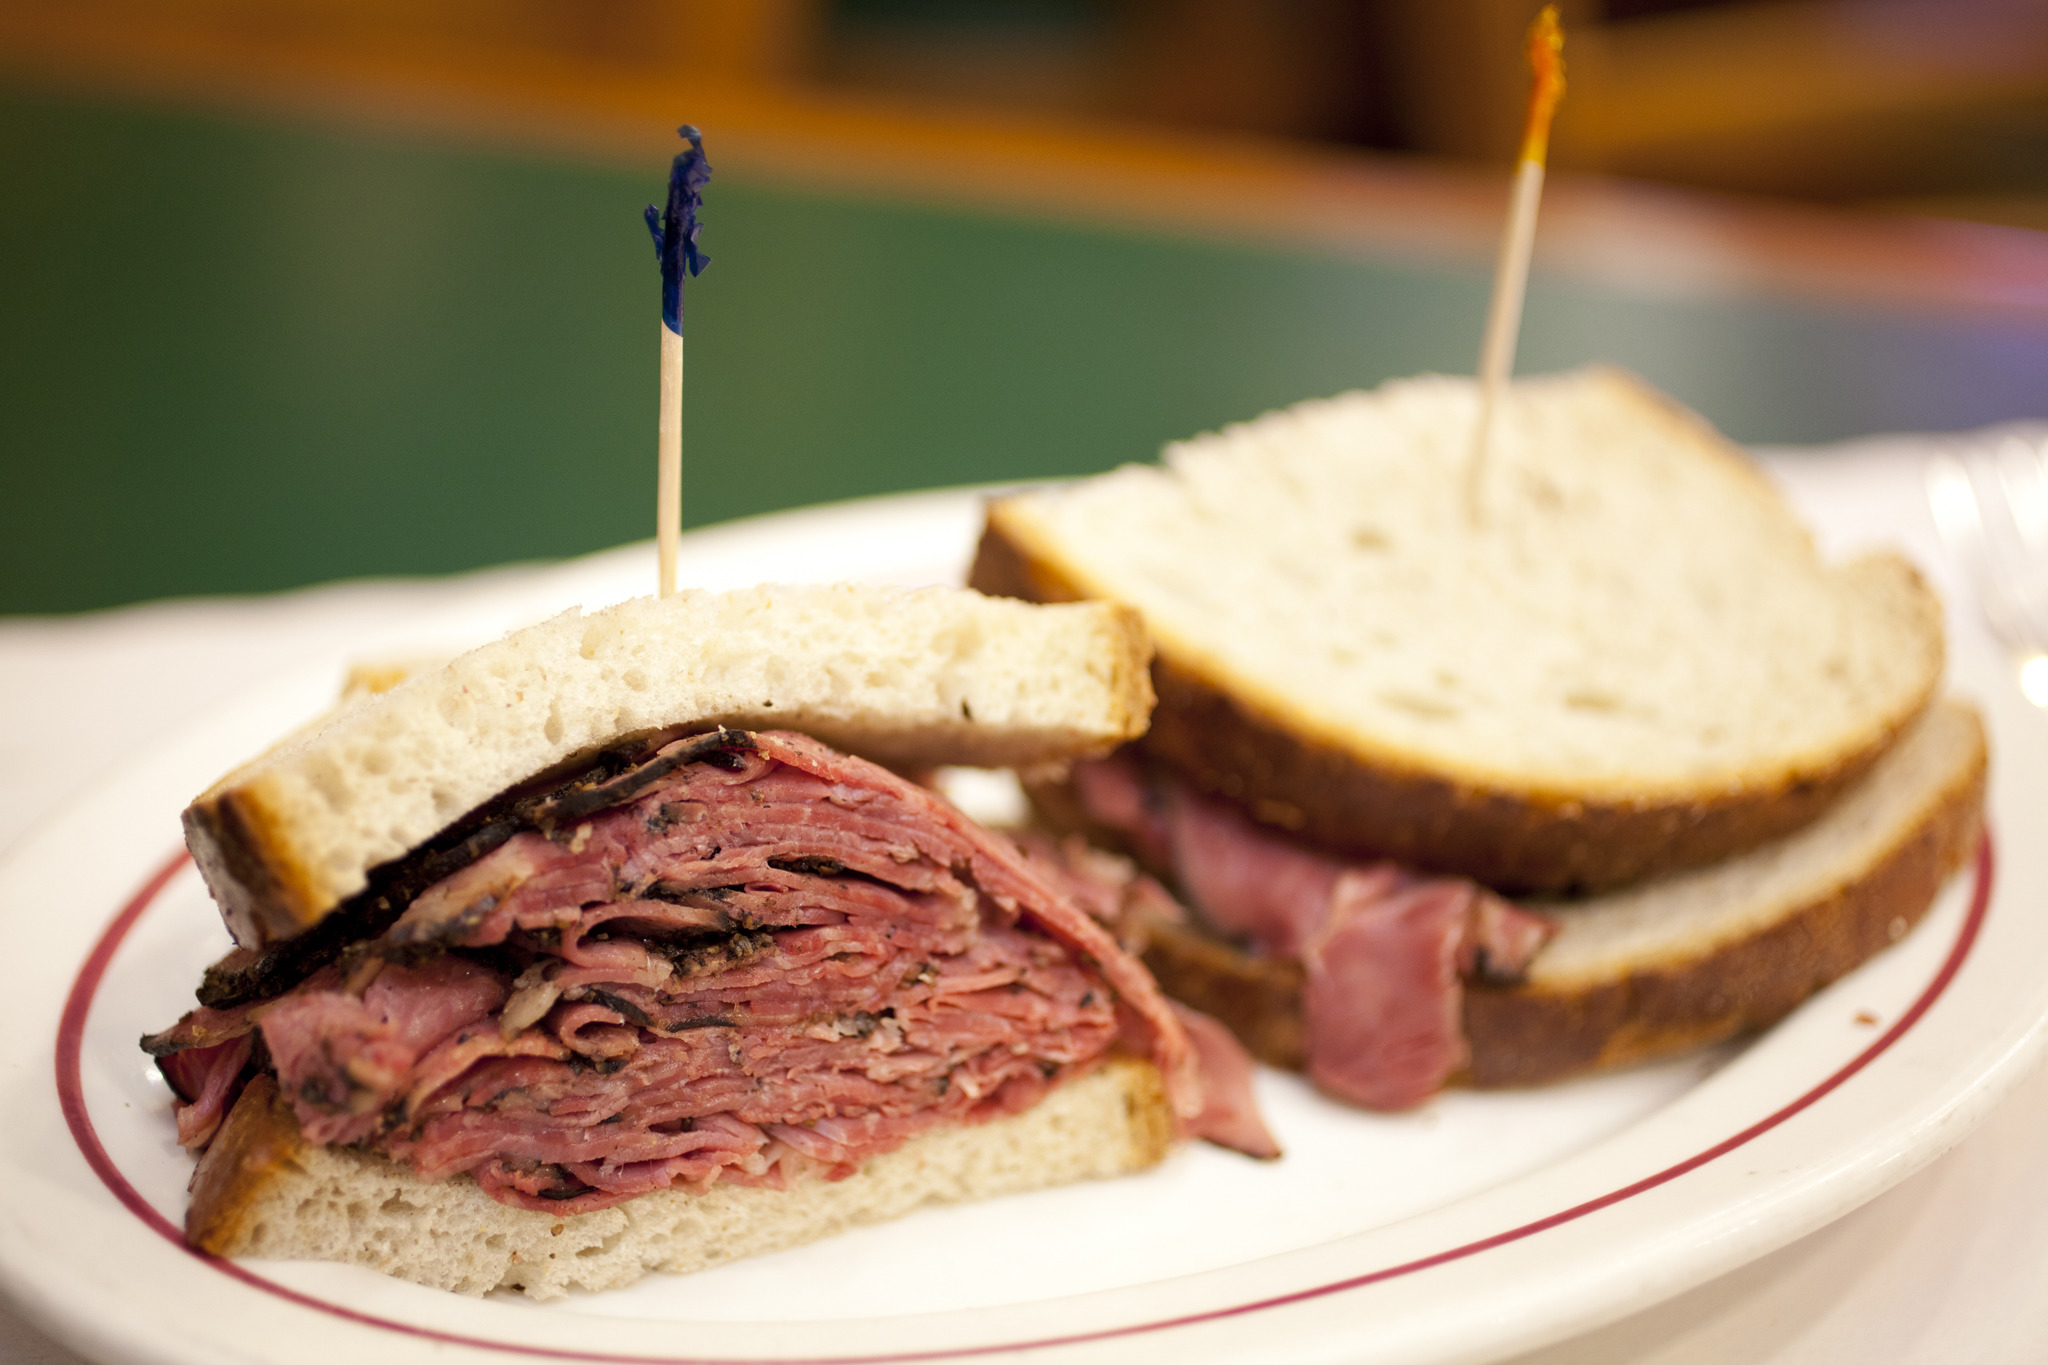 Best Pastrami Sandwiches In Nyc At Delis And Restaurants